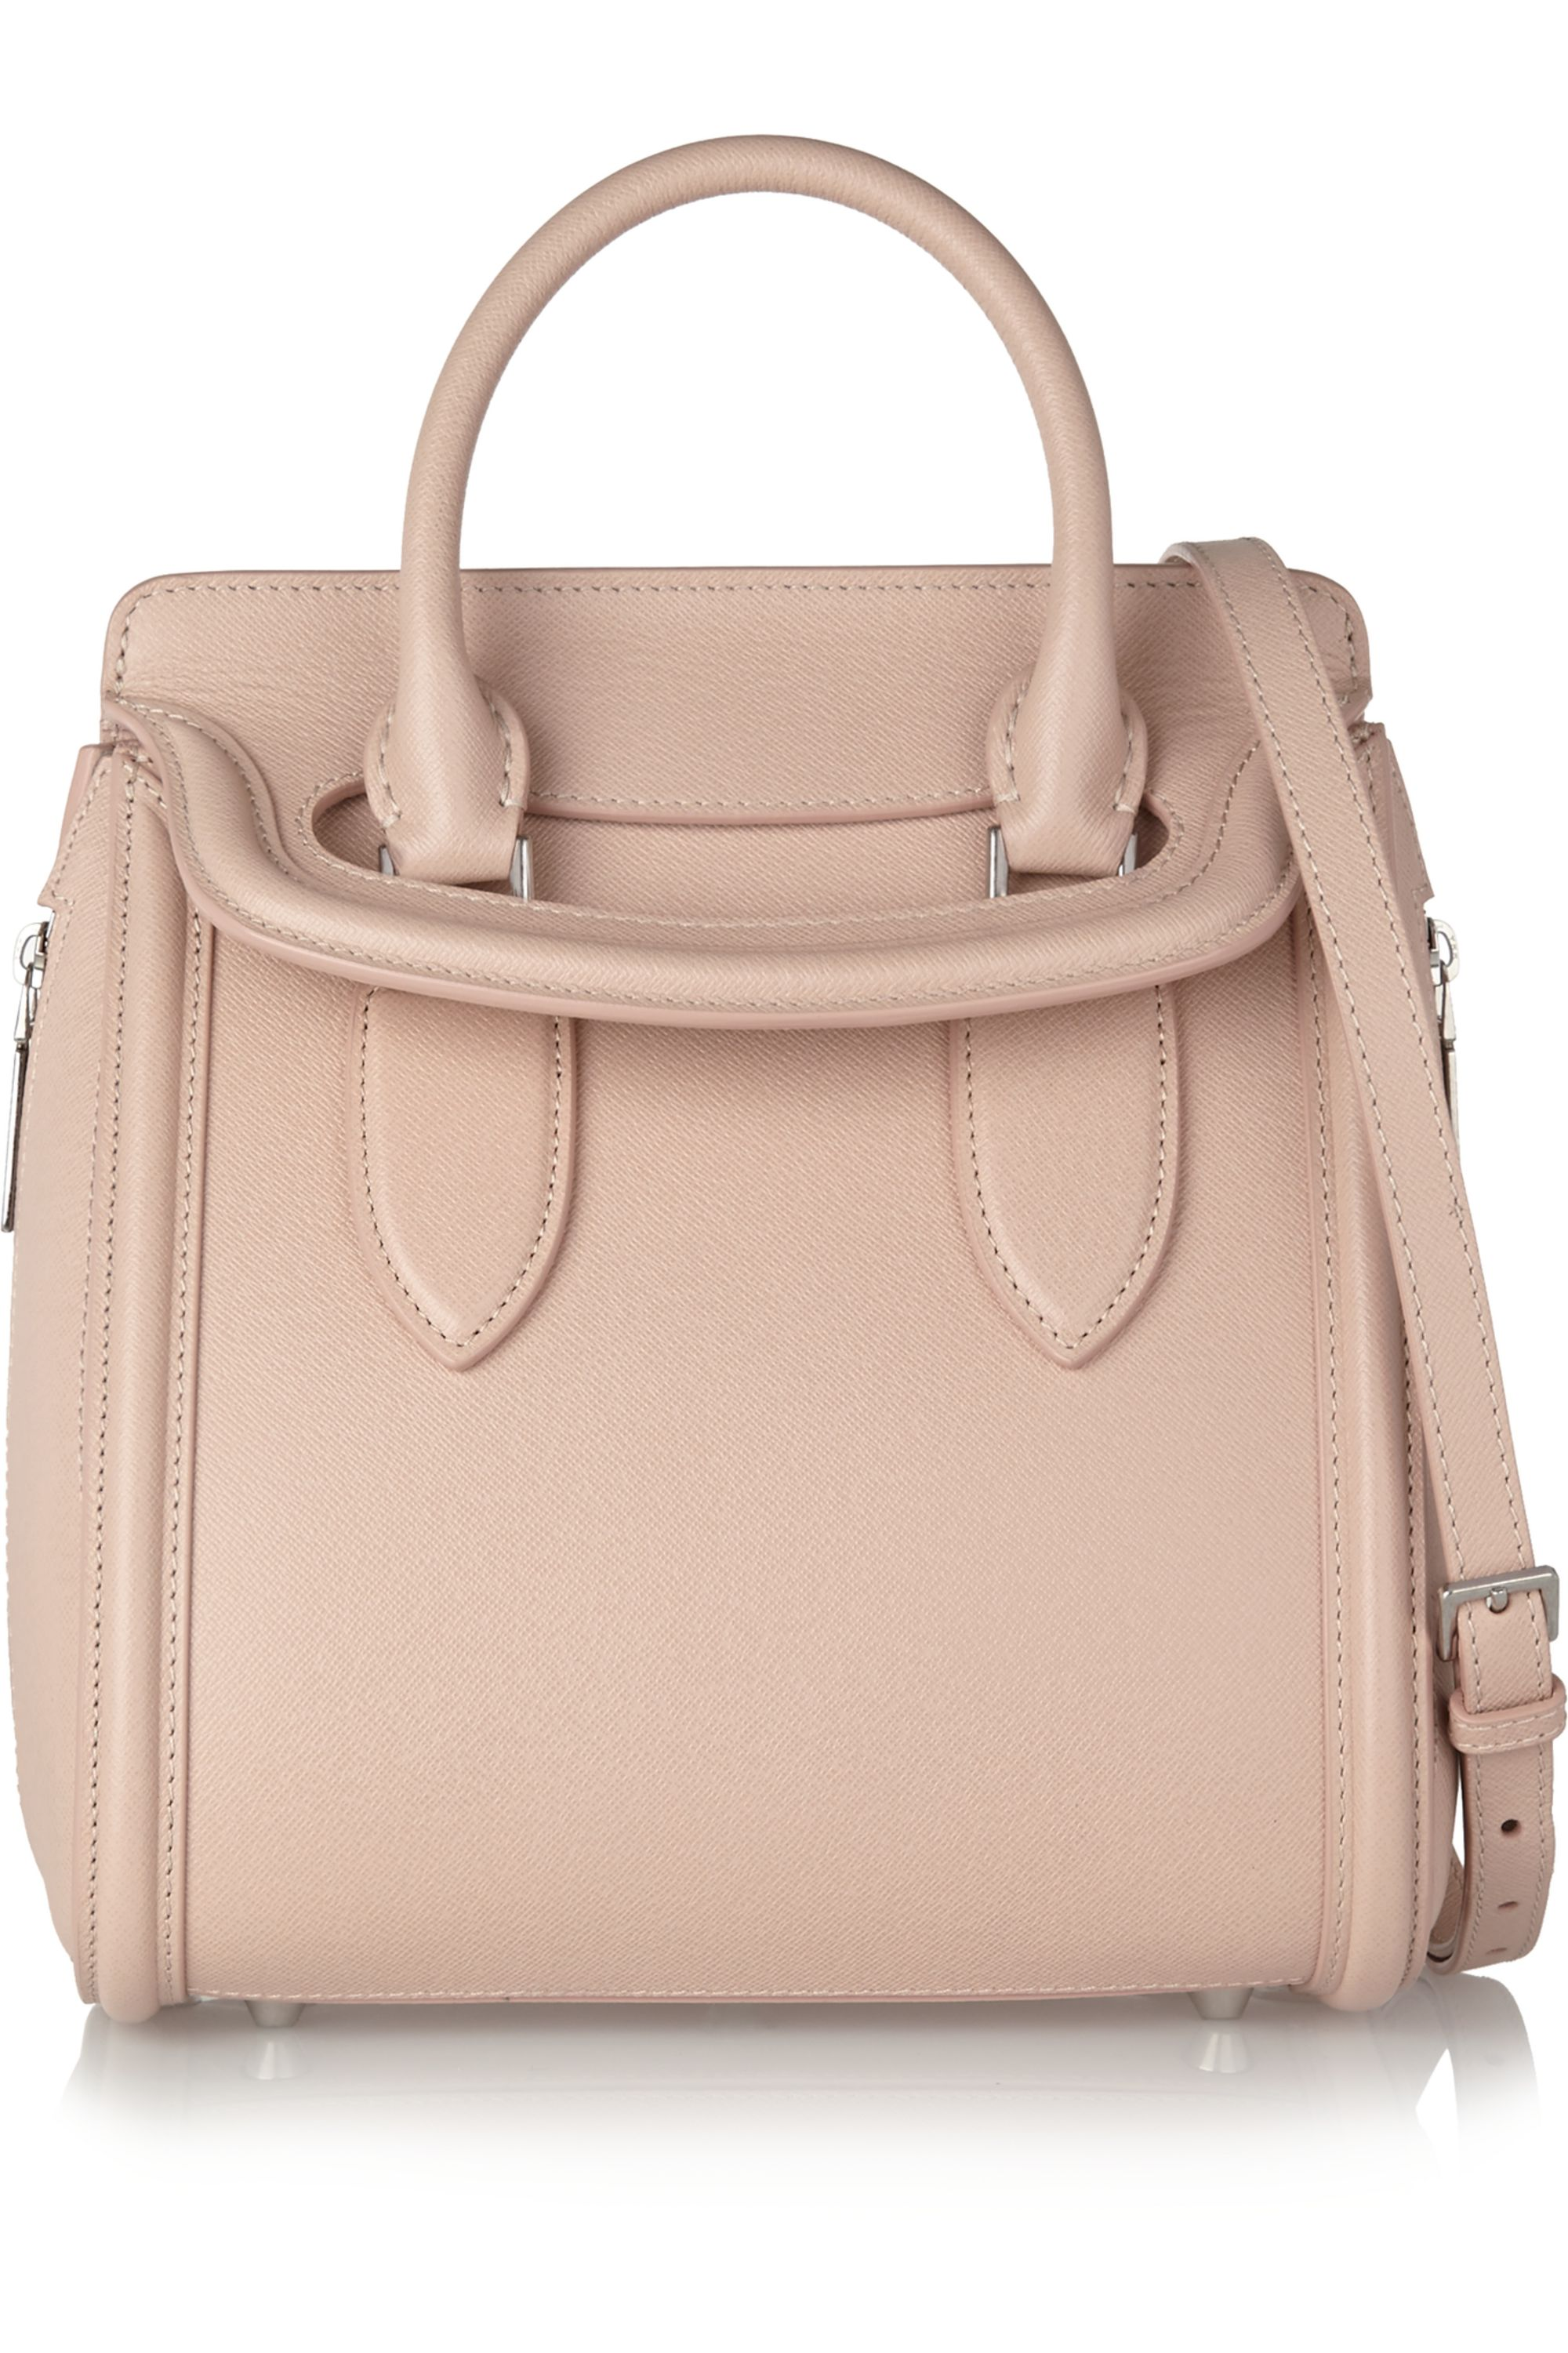 Alexander McQueen The Herione small textured-leather tote